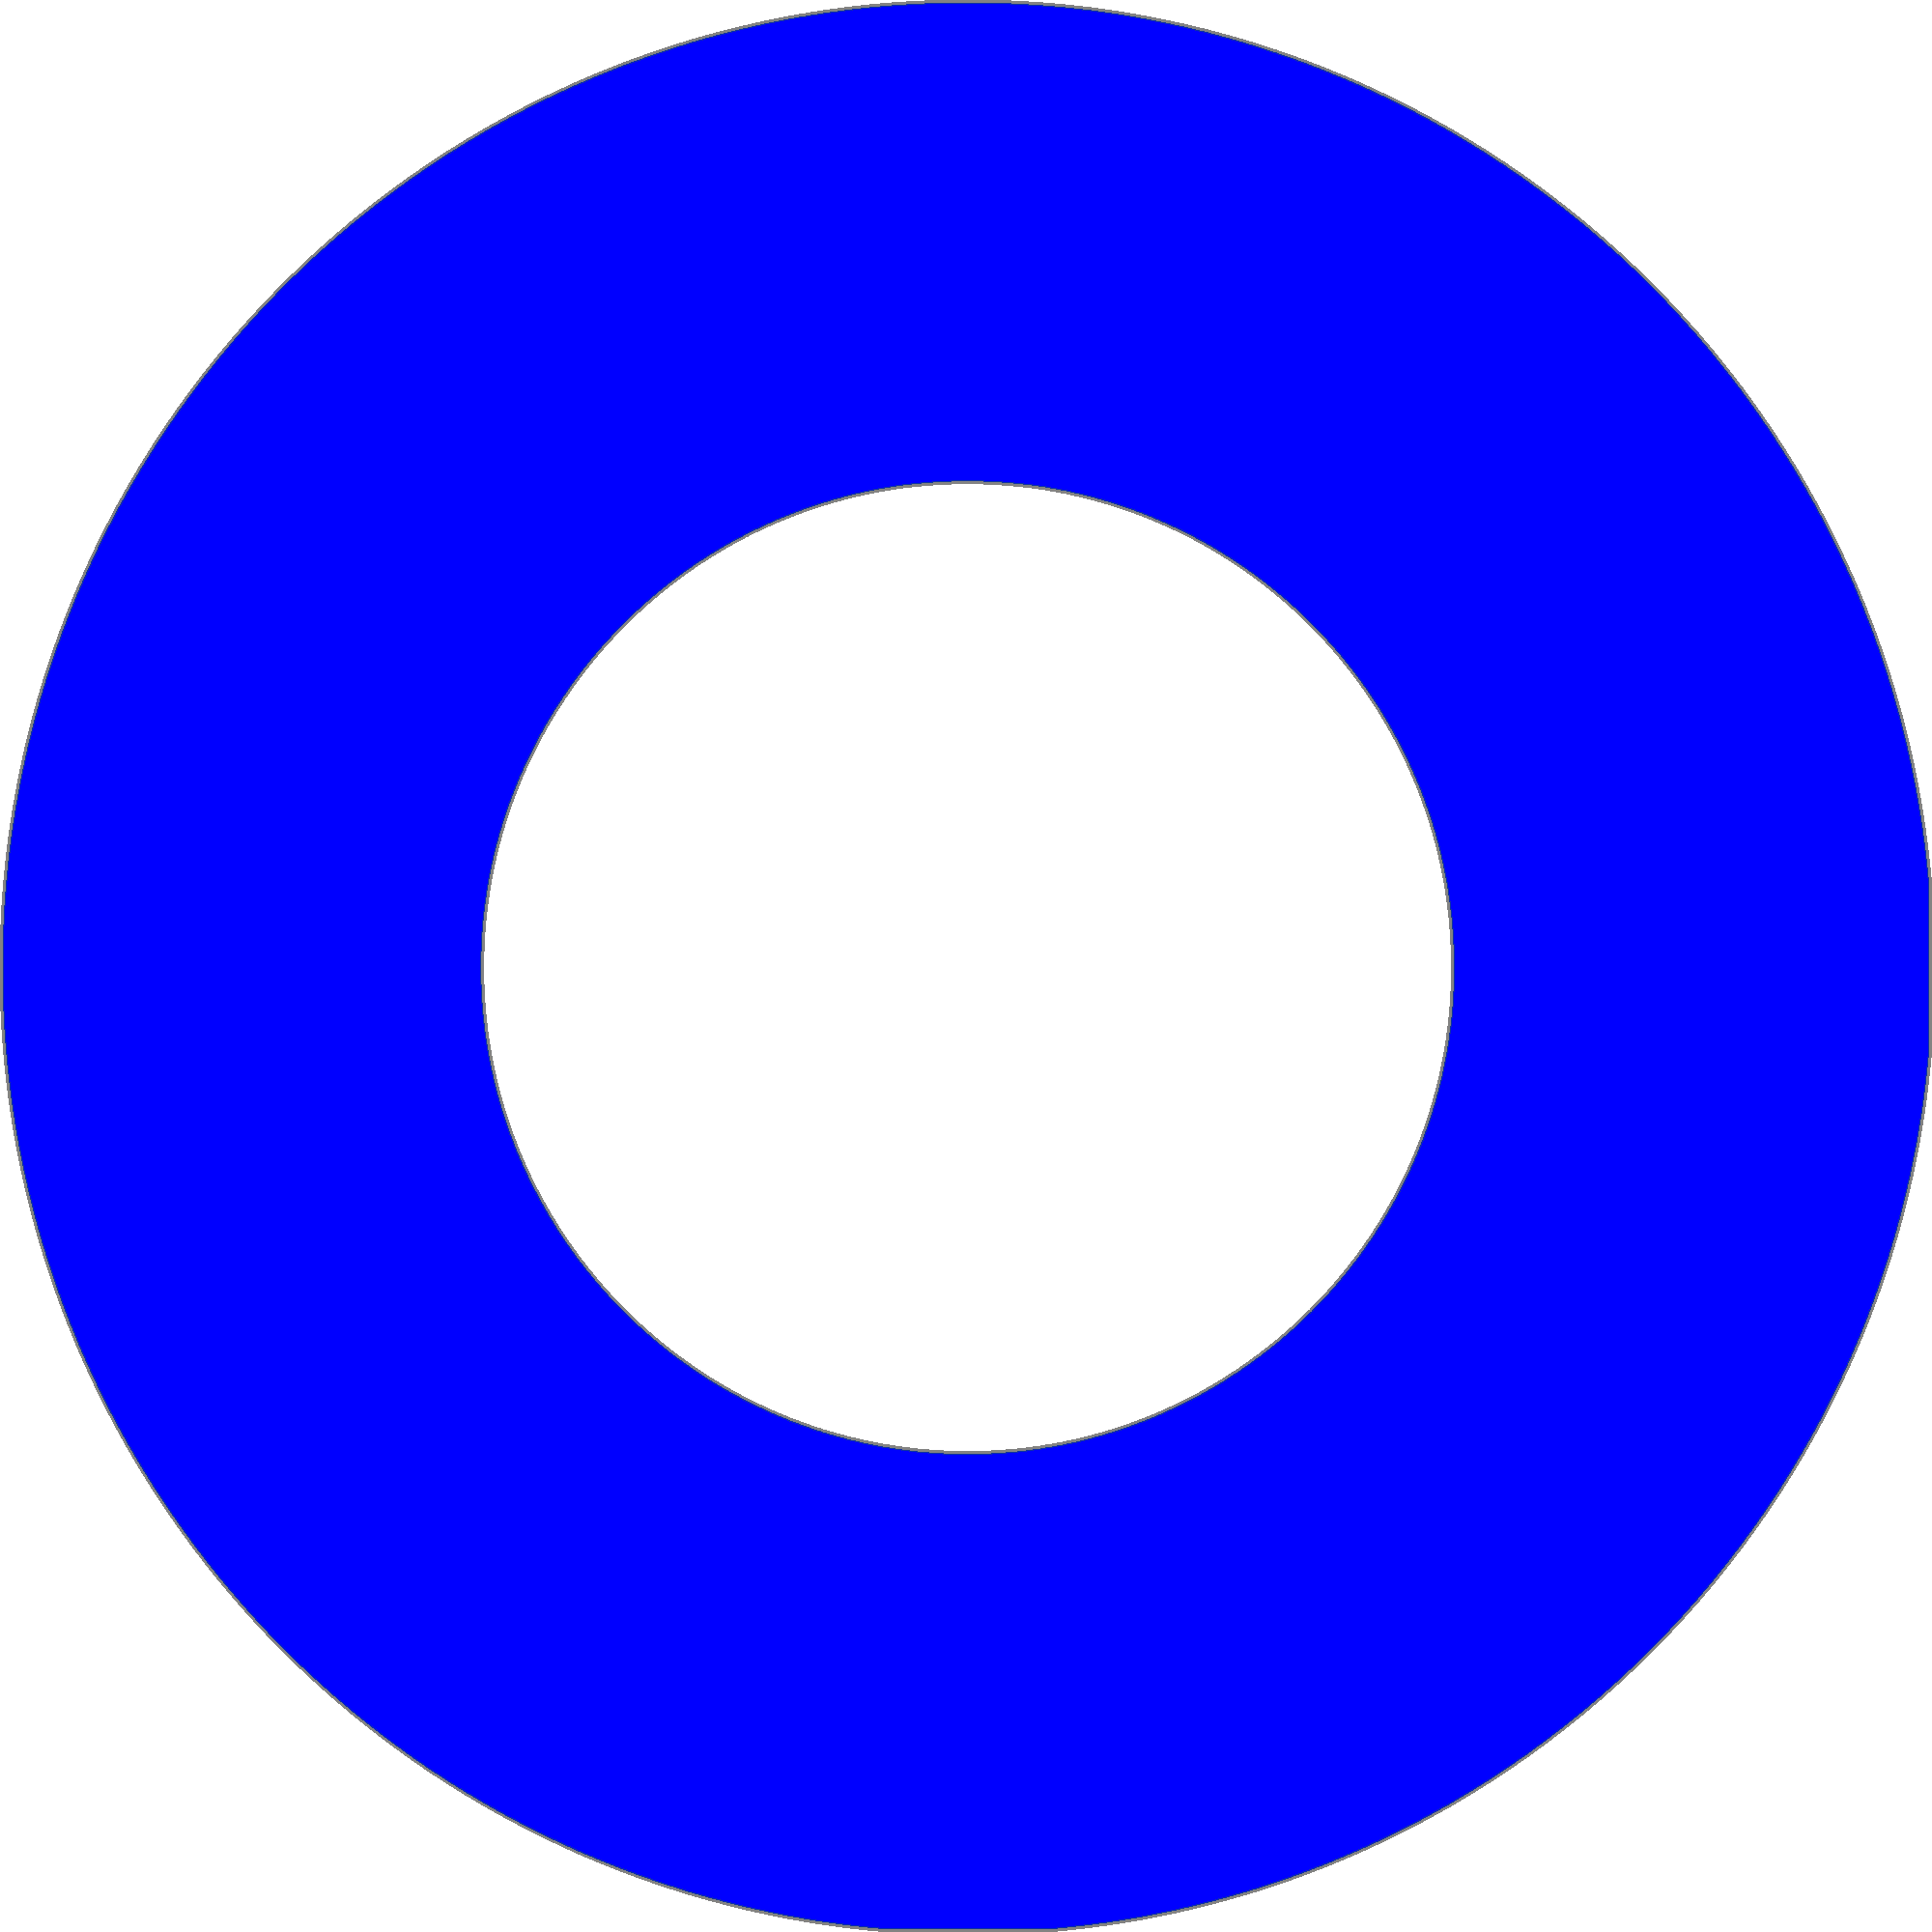 Blue circle png. File wikimedia commons fileblue